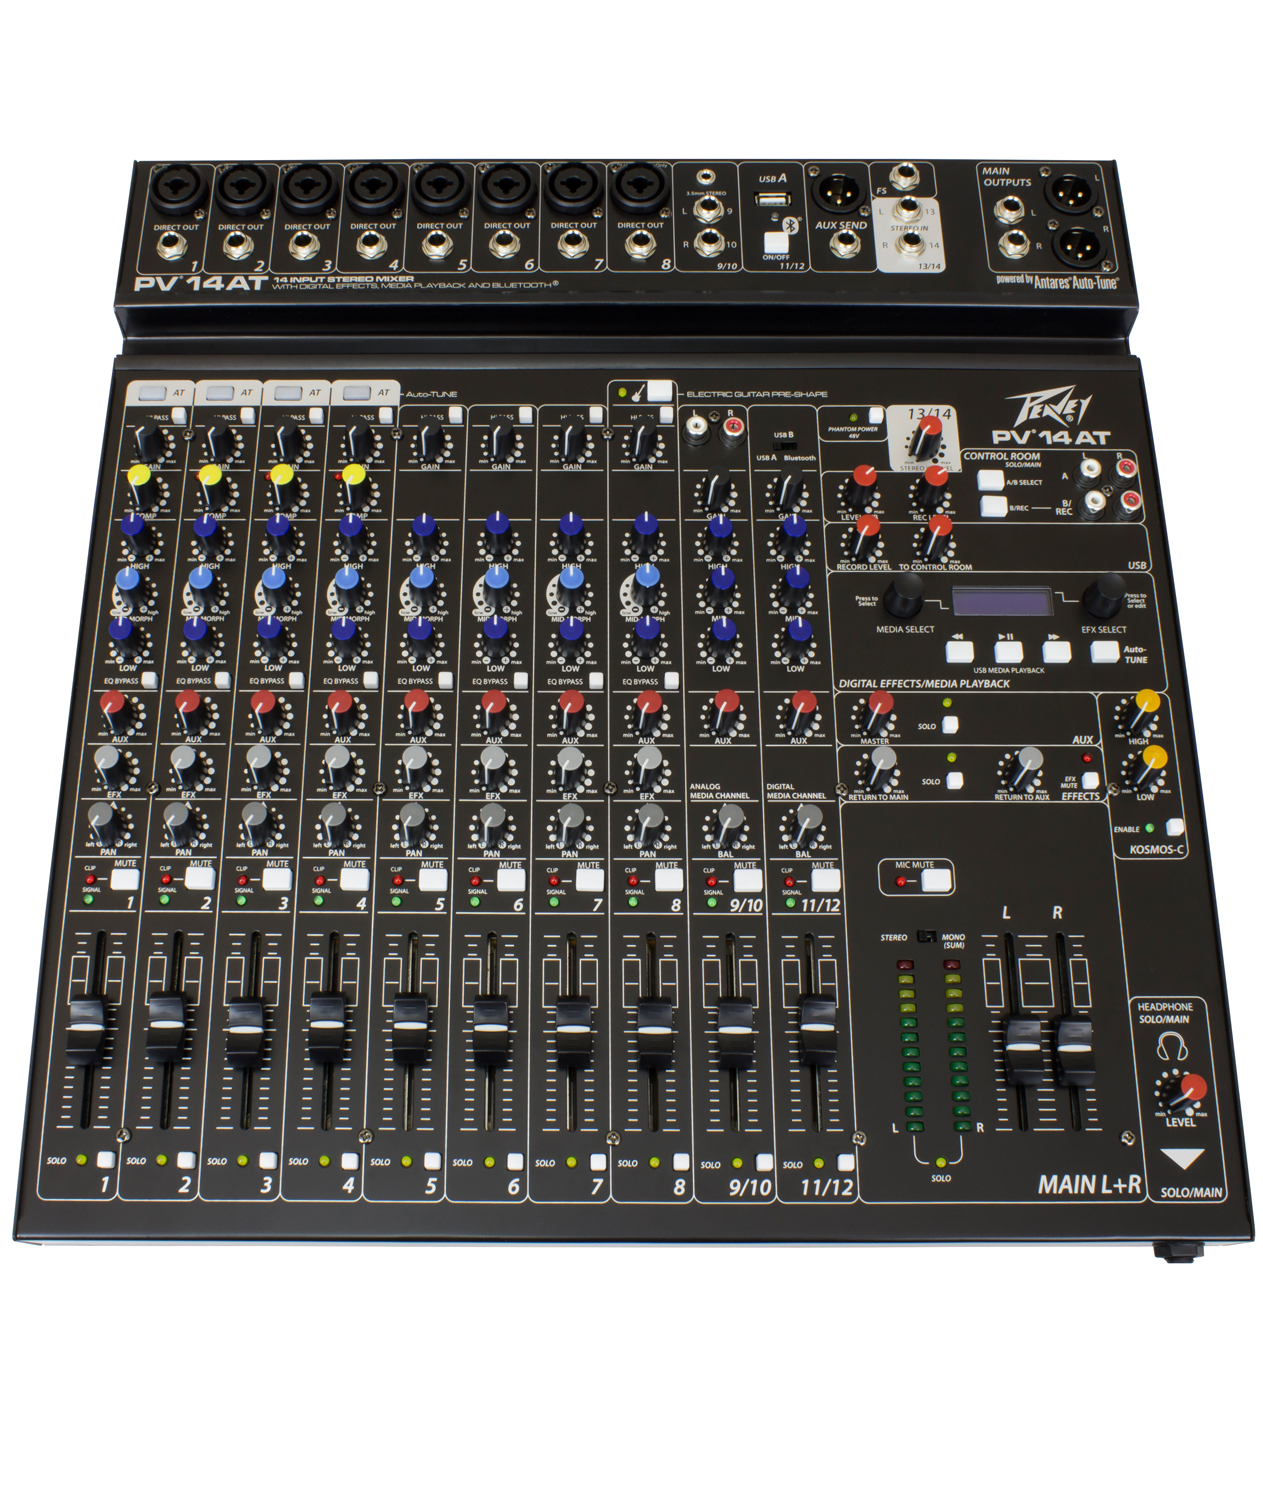 PV 14 AT 14 Channel Compact Mixer with Bluetooth and Antares® Auto-Tune